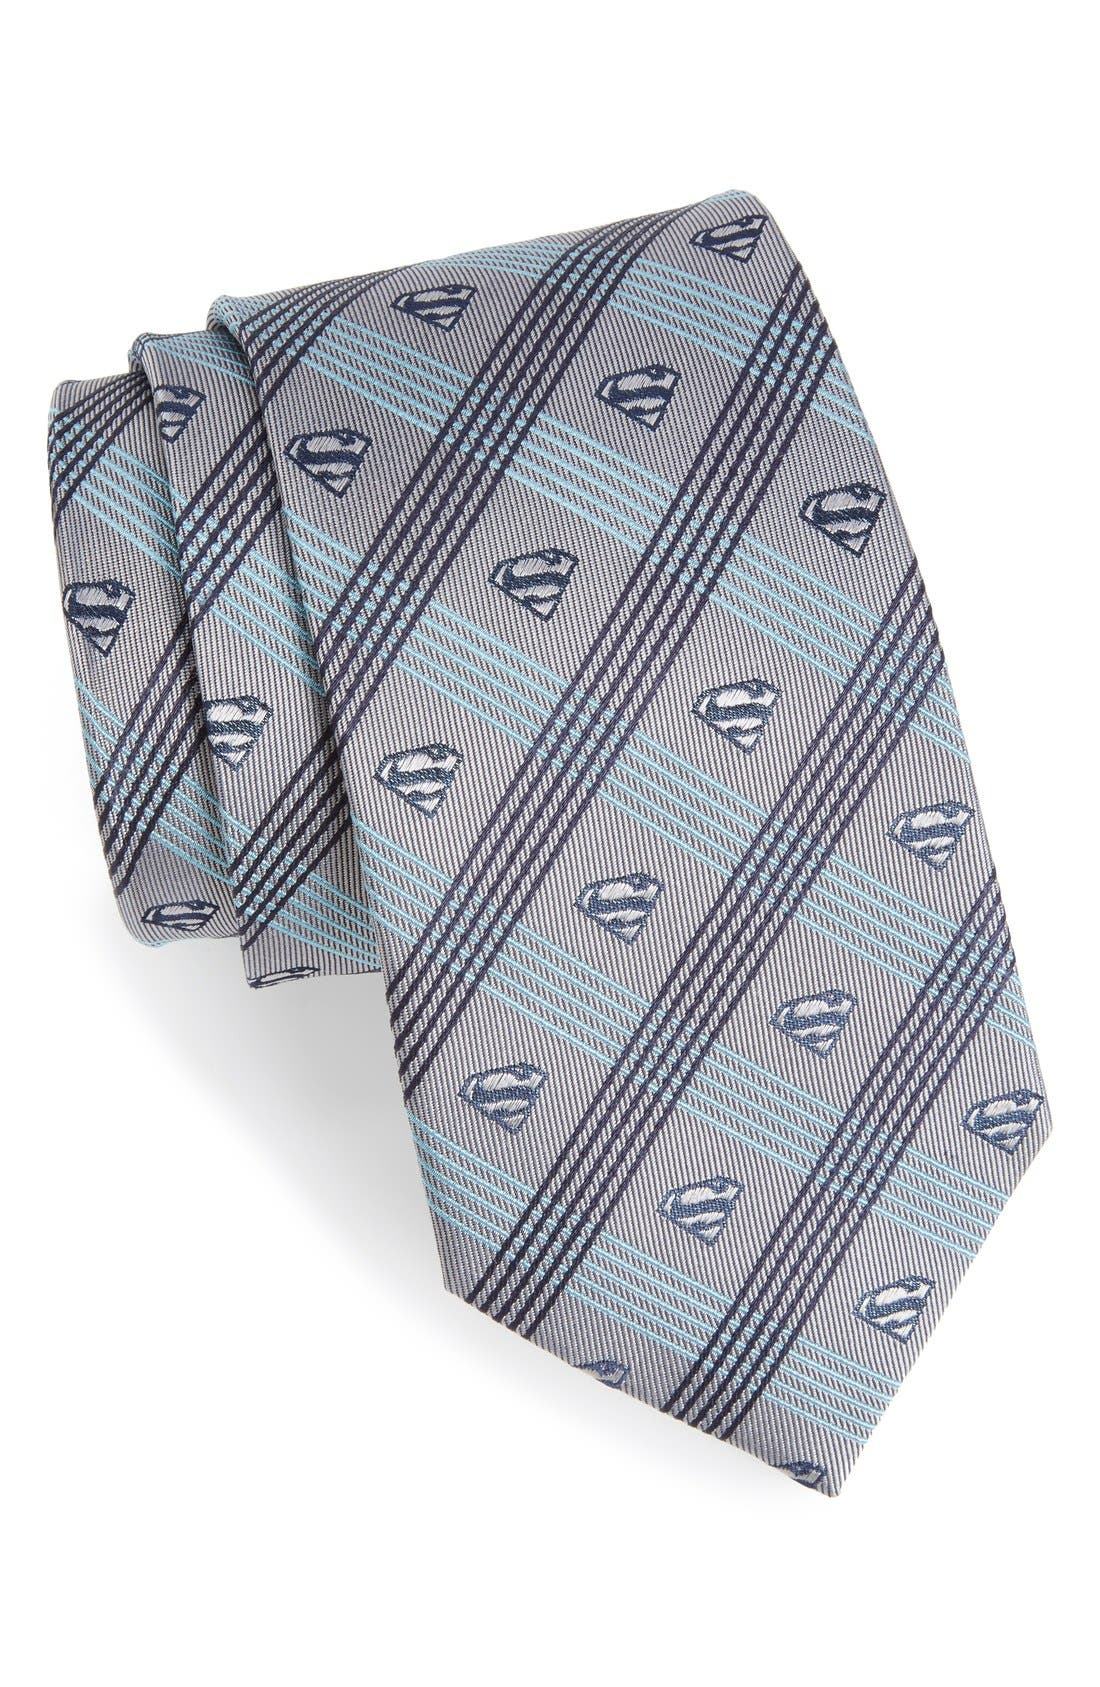 'Superman' Plaid Silk Tie,                             Main thumbnail 1, color,                             020